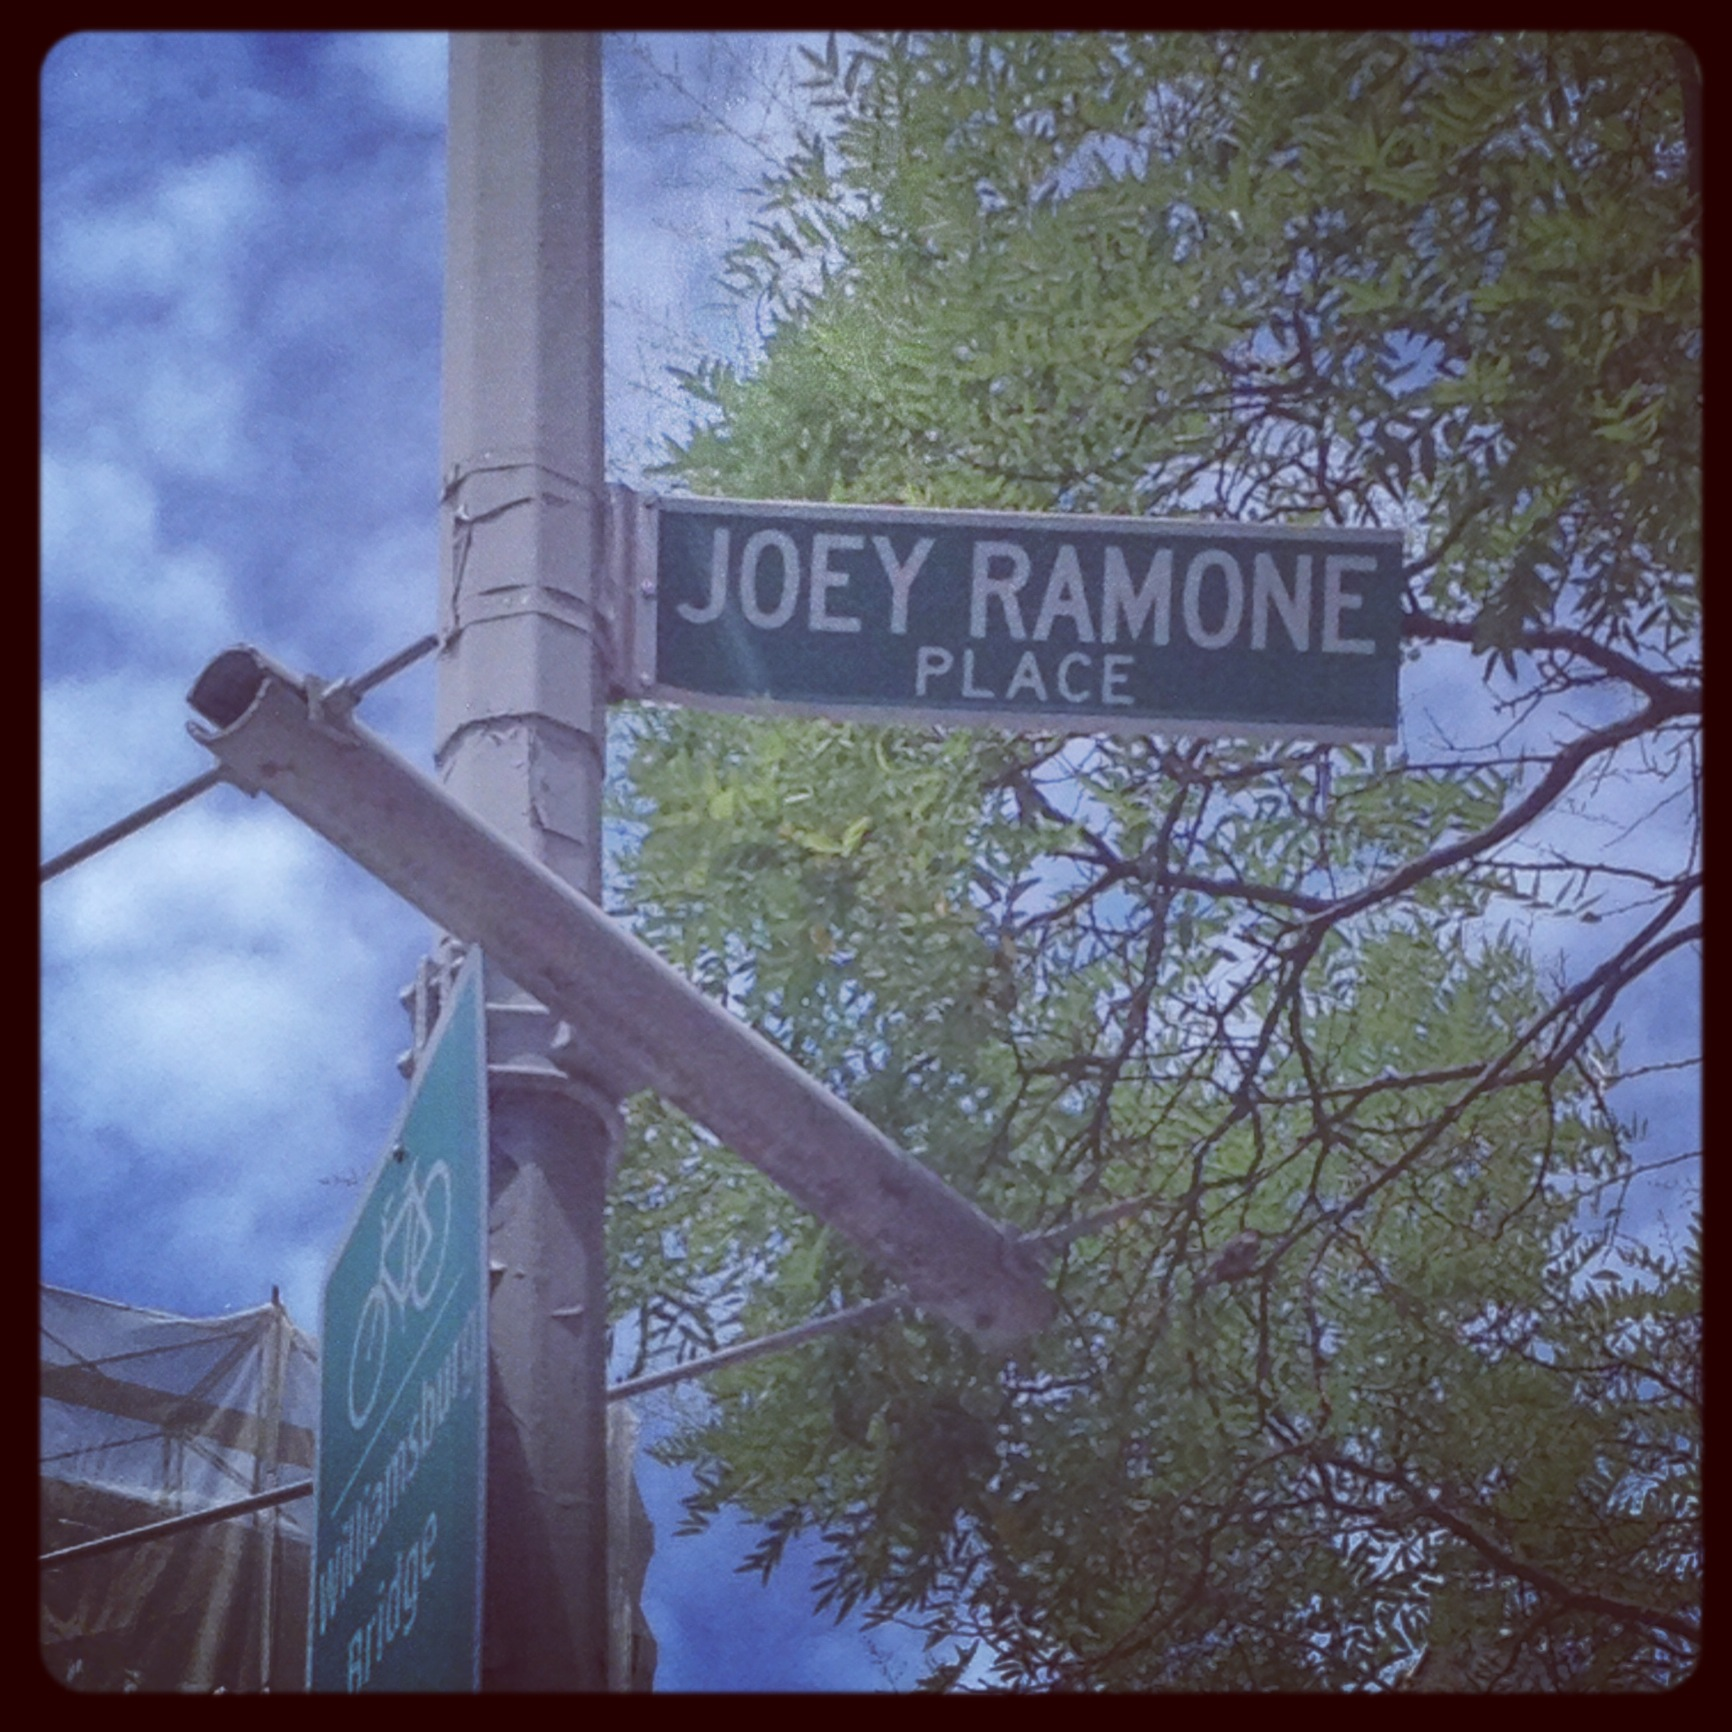 Joey Ramone Place was at one time the most-stolen street sign in NYC